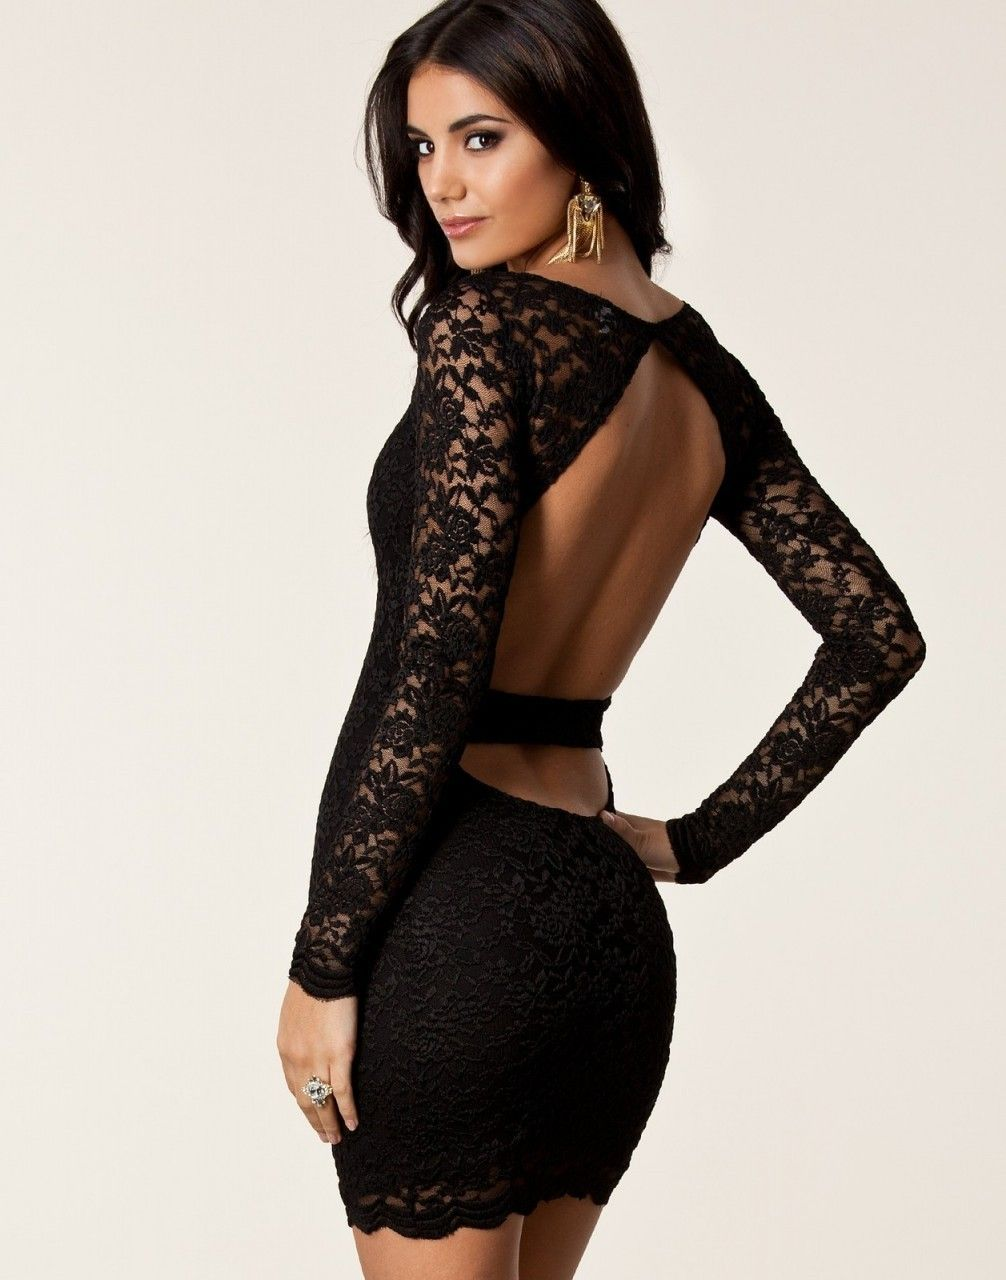 Shop Kami Shade  - Sexy Laced Open Back Cocktail Dress Black 8cc2b60af88